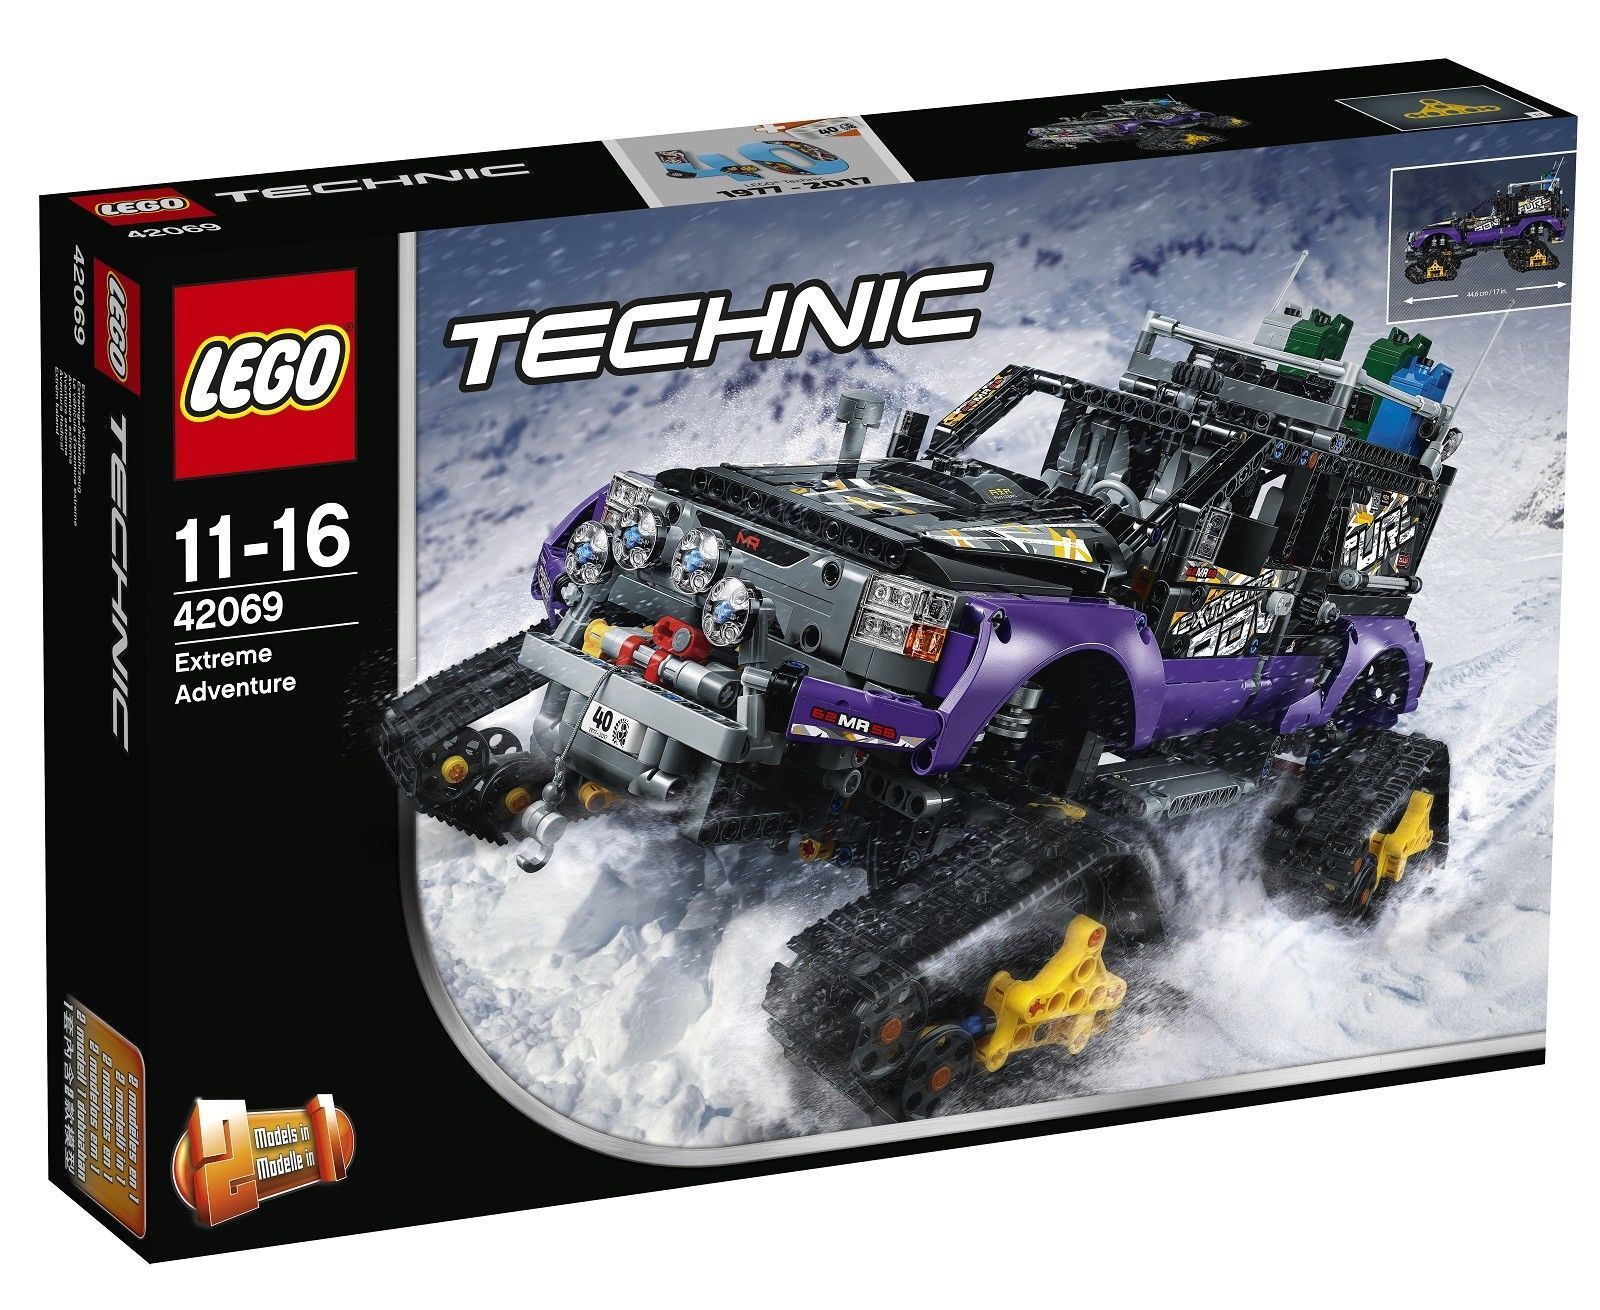 LEGO Technic Extreme Adventure 2017 (42069) - BRAND NEW RETIRED